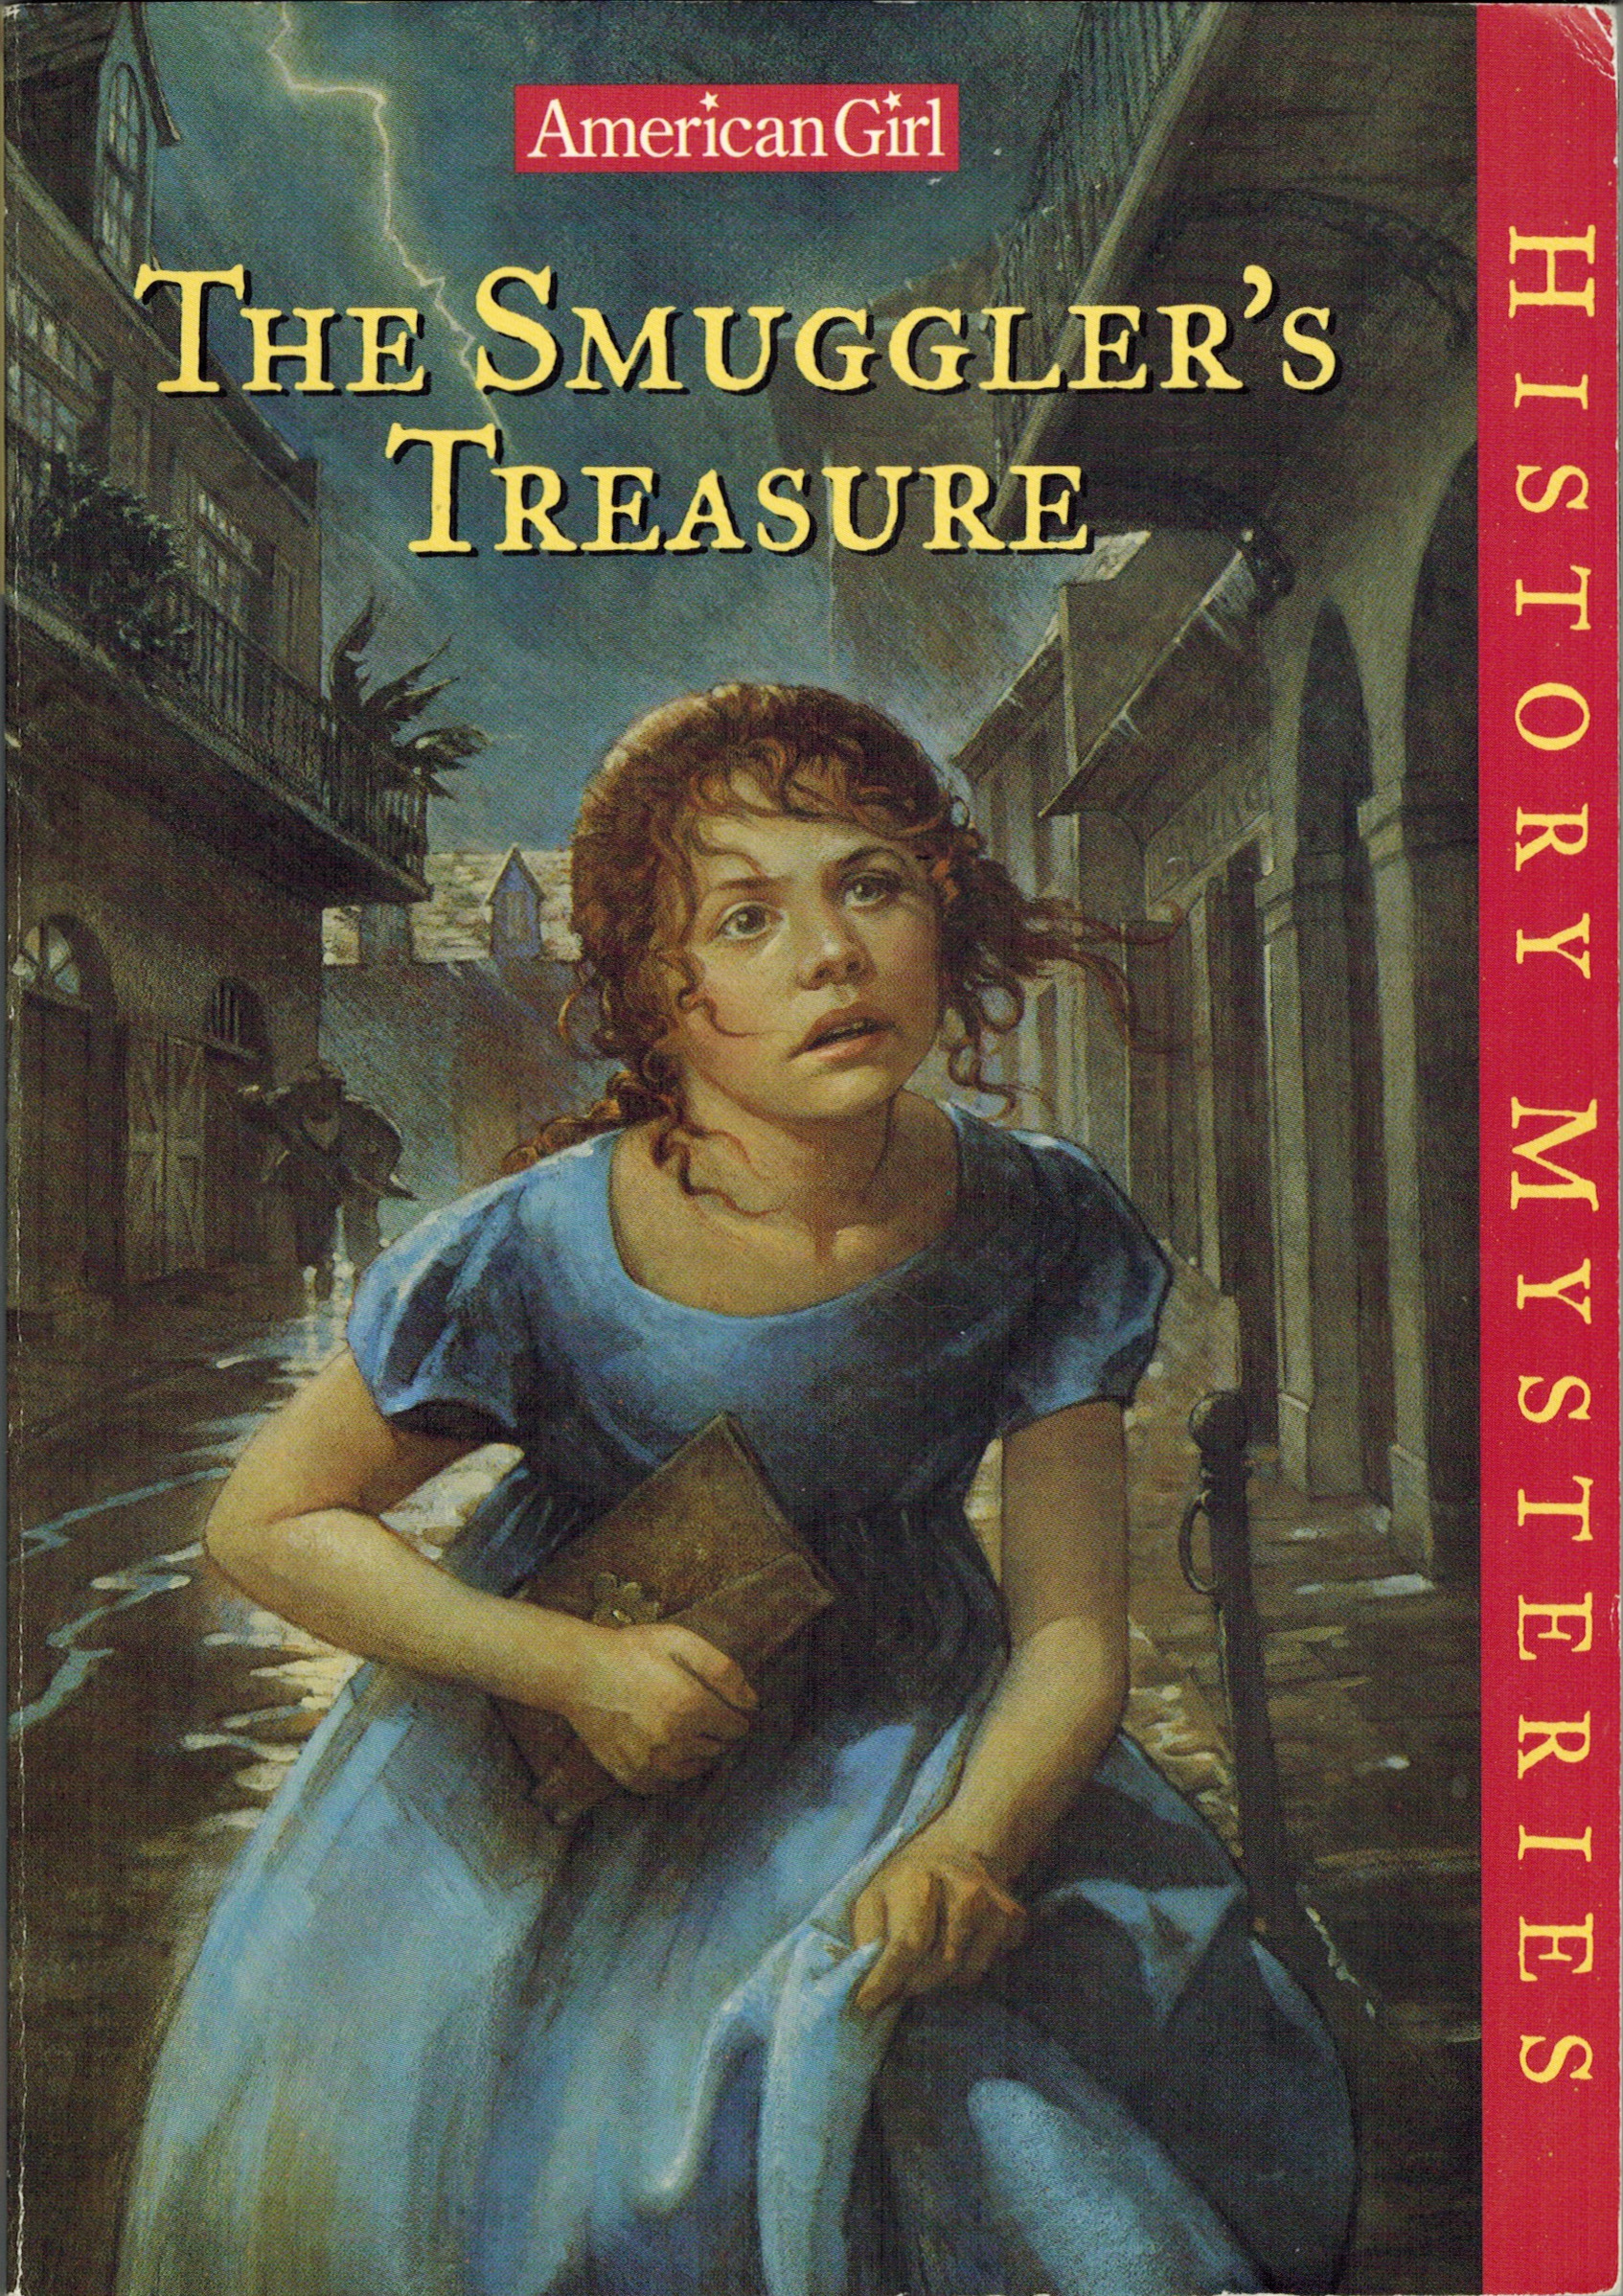 The Smuggler's Treasure